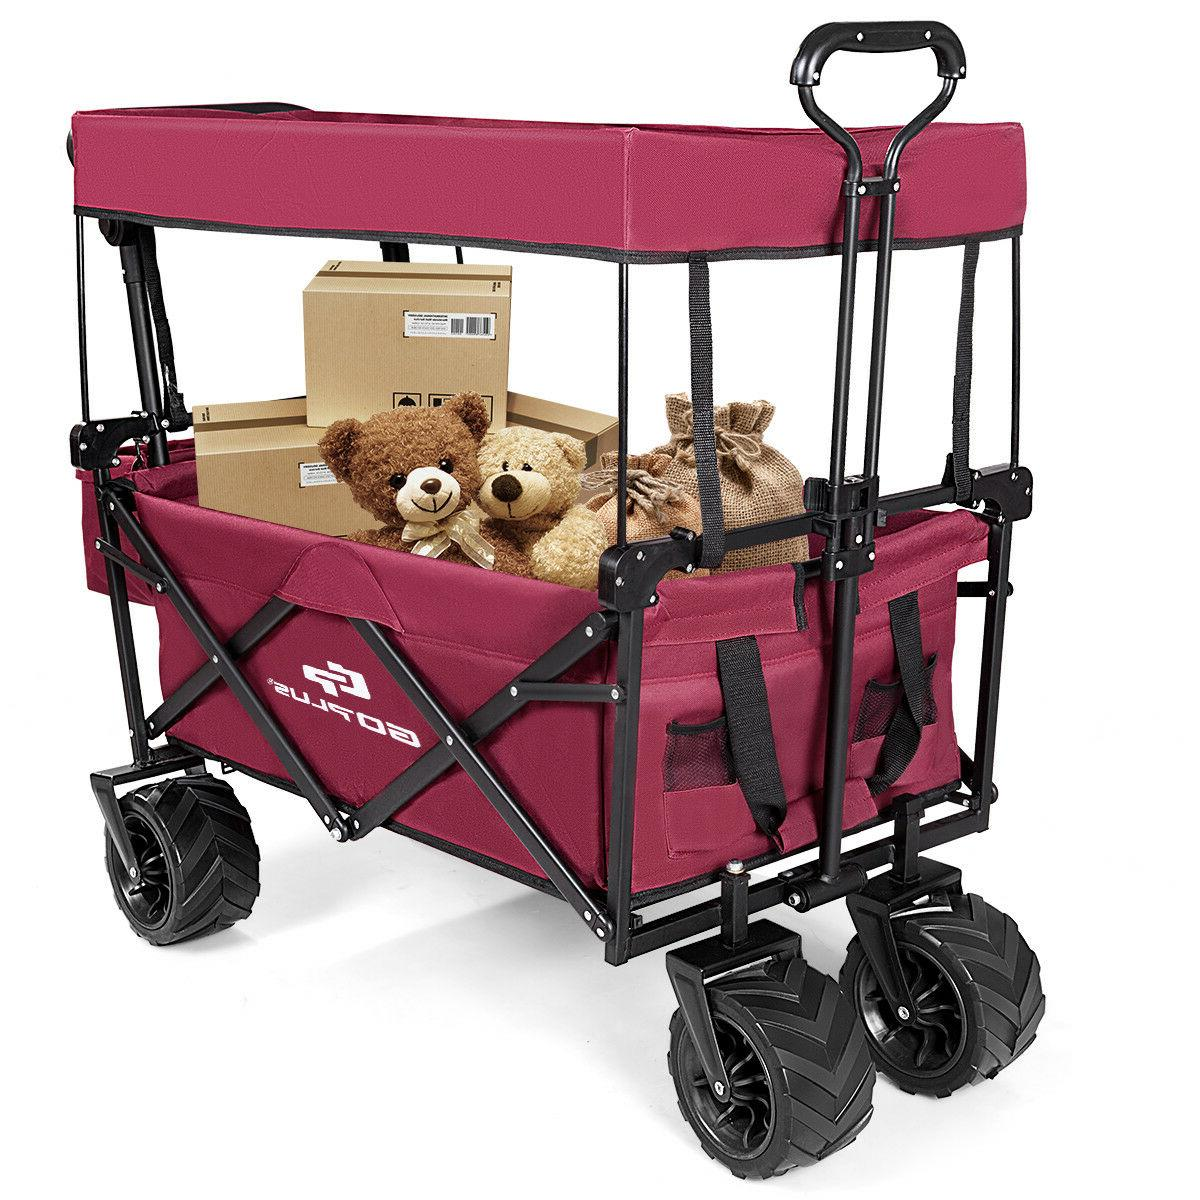 Collapsible Folding Wagon W/ Canopy Outdoor Garden Trolley Buggy